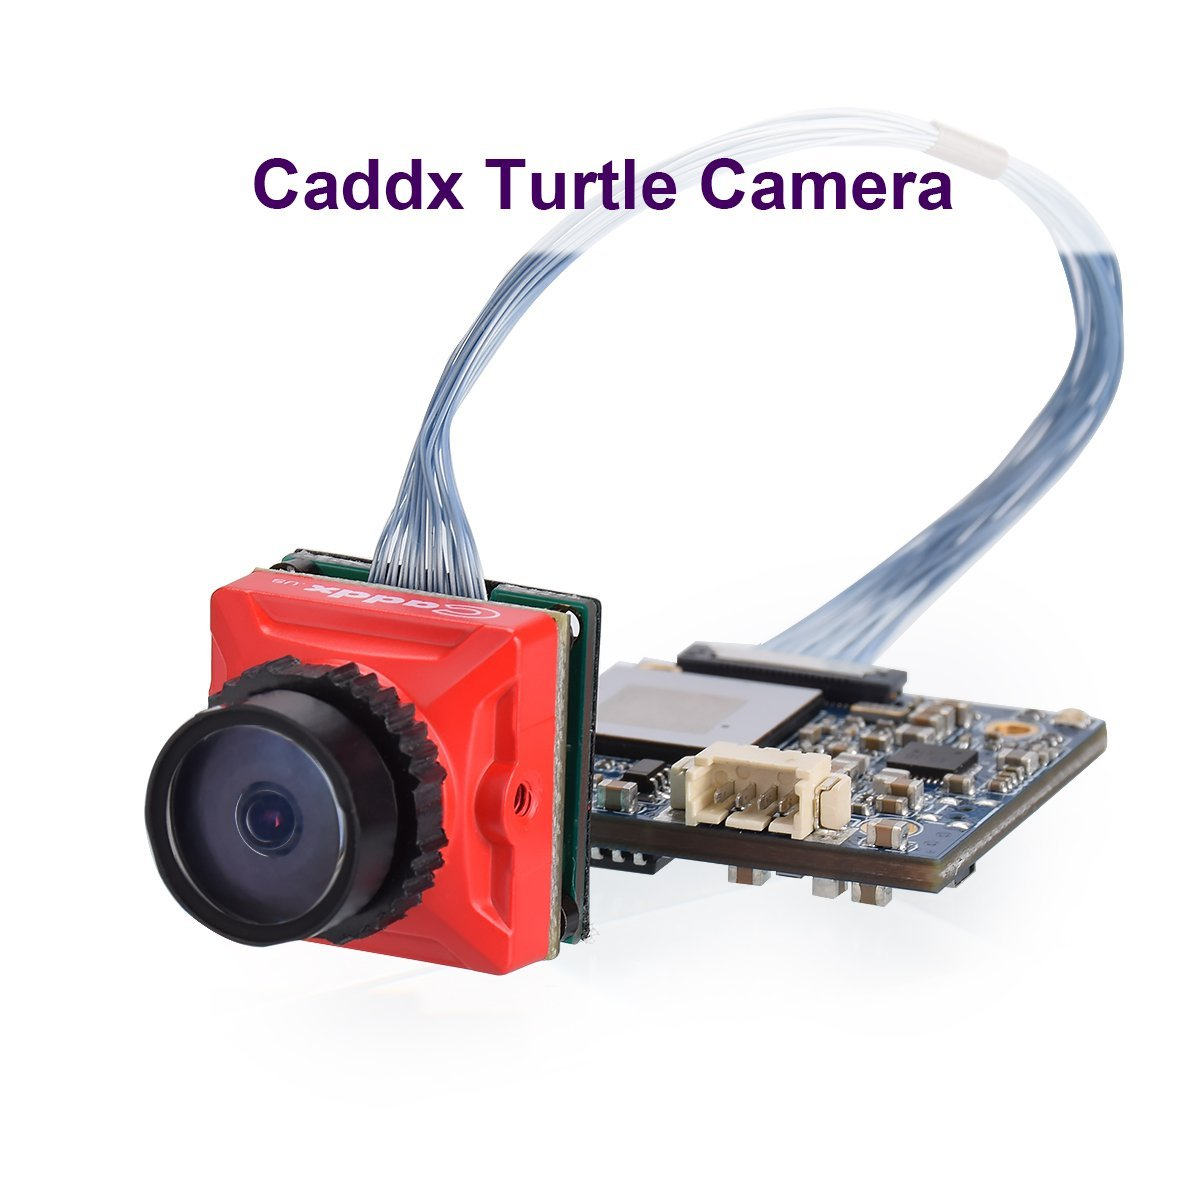 Caddx FPV Camera Turtle Micro Mini Cam CMOS 1080P 60fps HD Recording FOV 170° with WDR OSD Low Latency Red for Tiny Whoop Racing Drone by Caddx